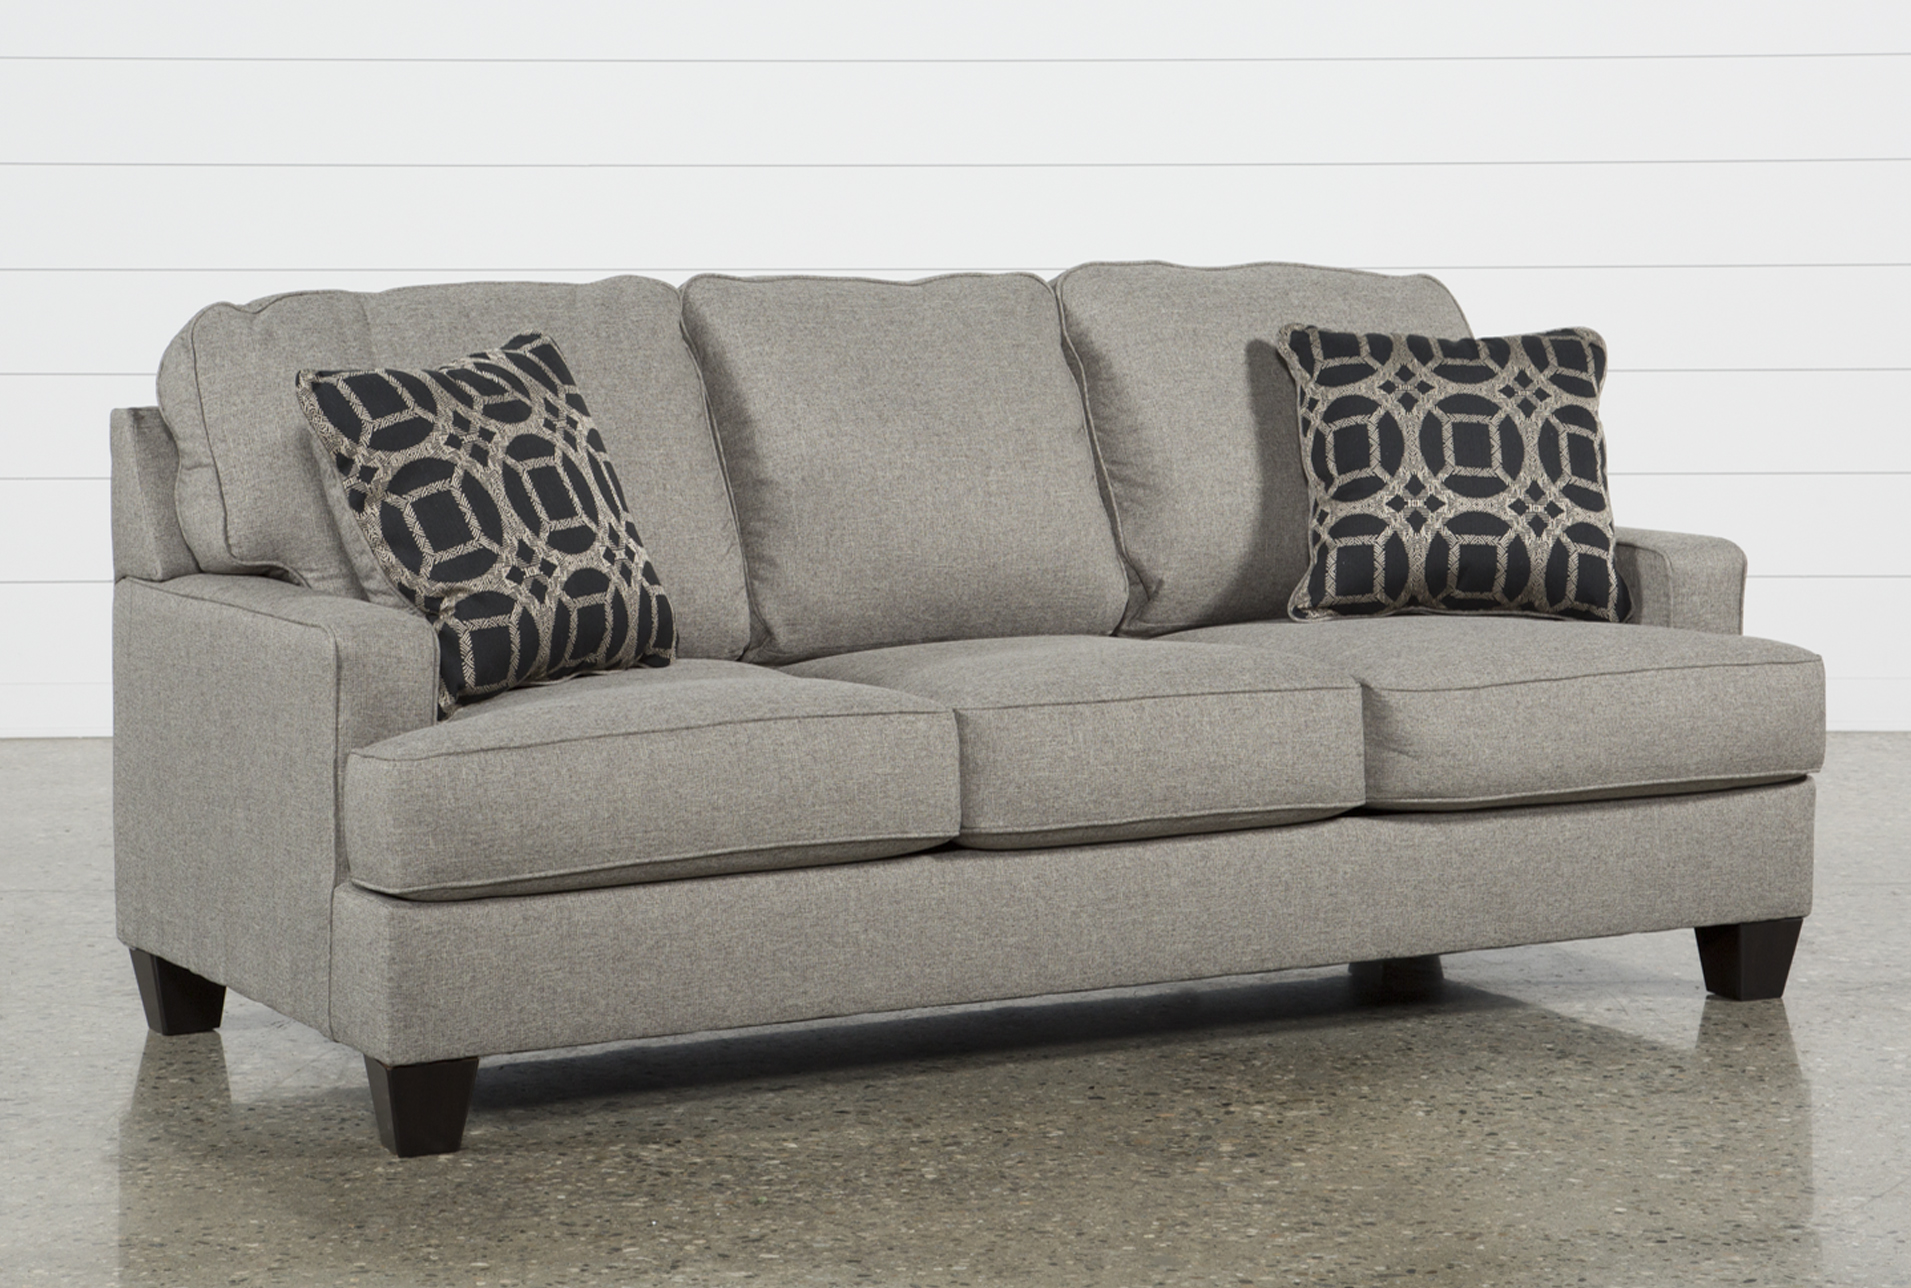 Merveilleux Added To Cart. Oakburn Queen Sofa Sleeper ...